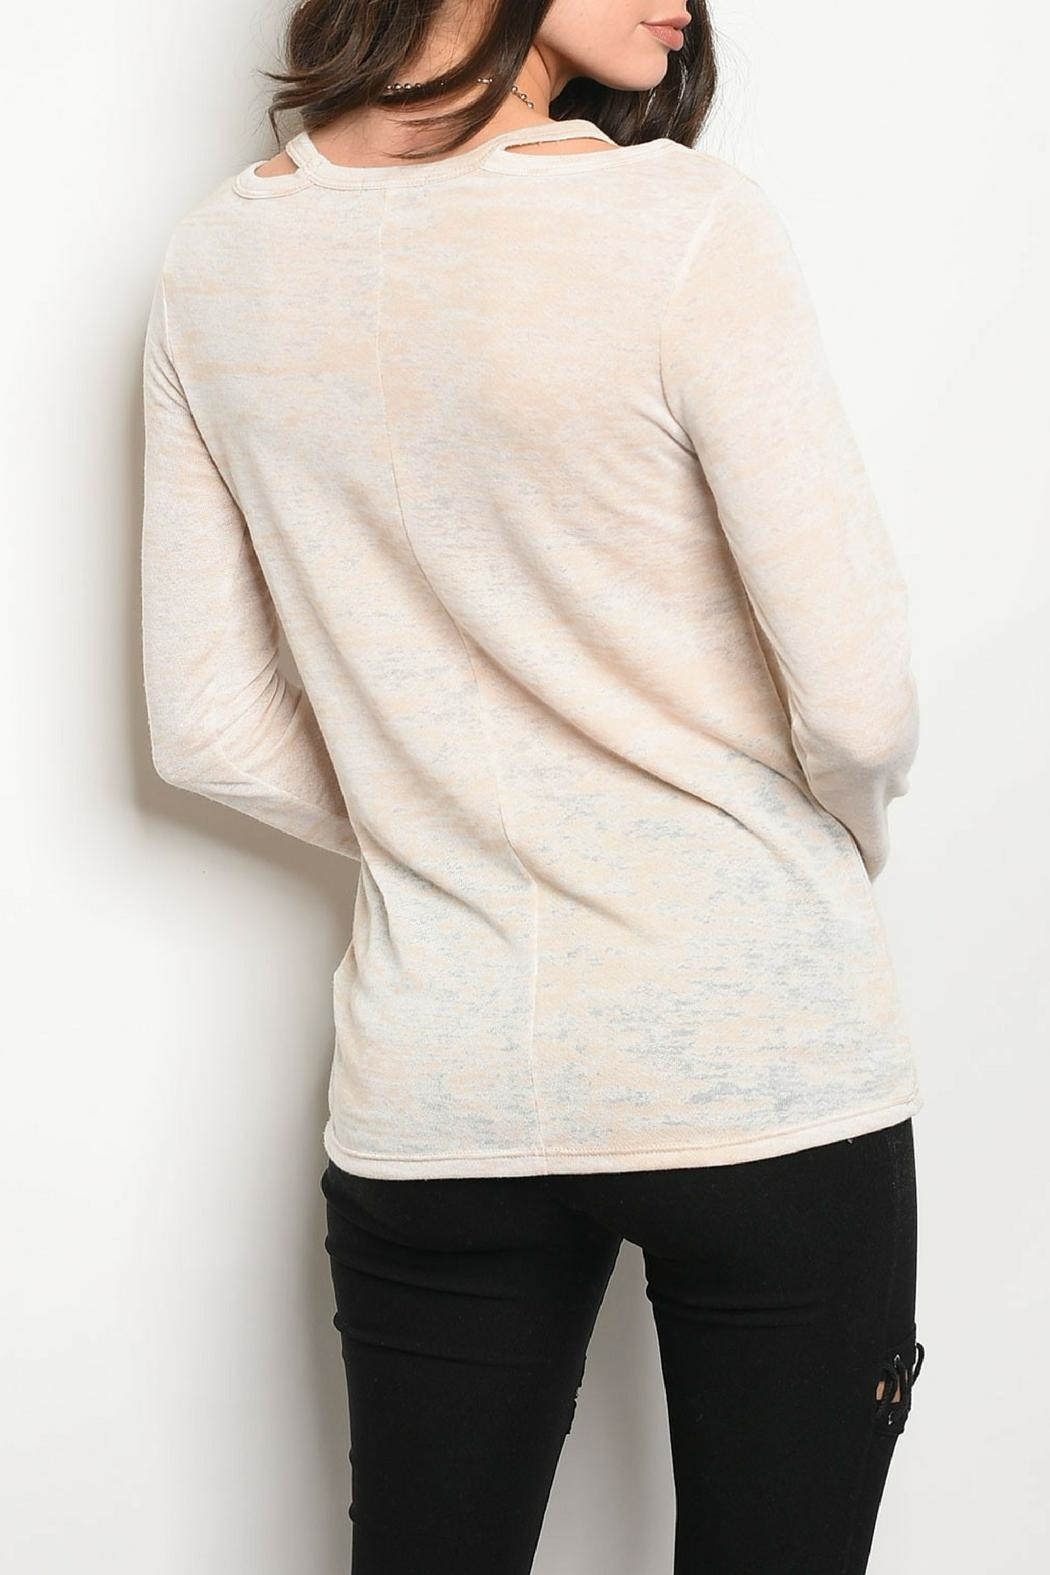 Sweet Claire Lightweight Oatmeal Top - Front Full Image